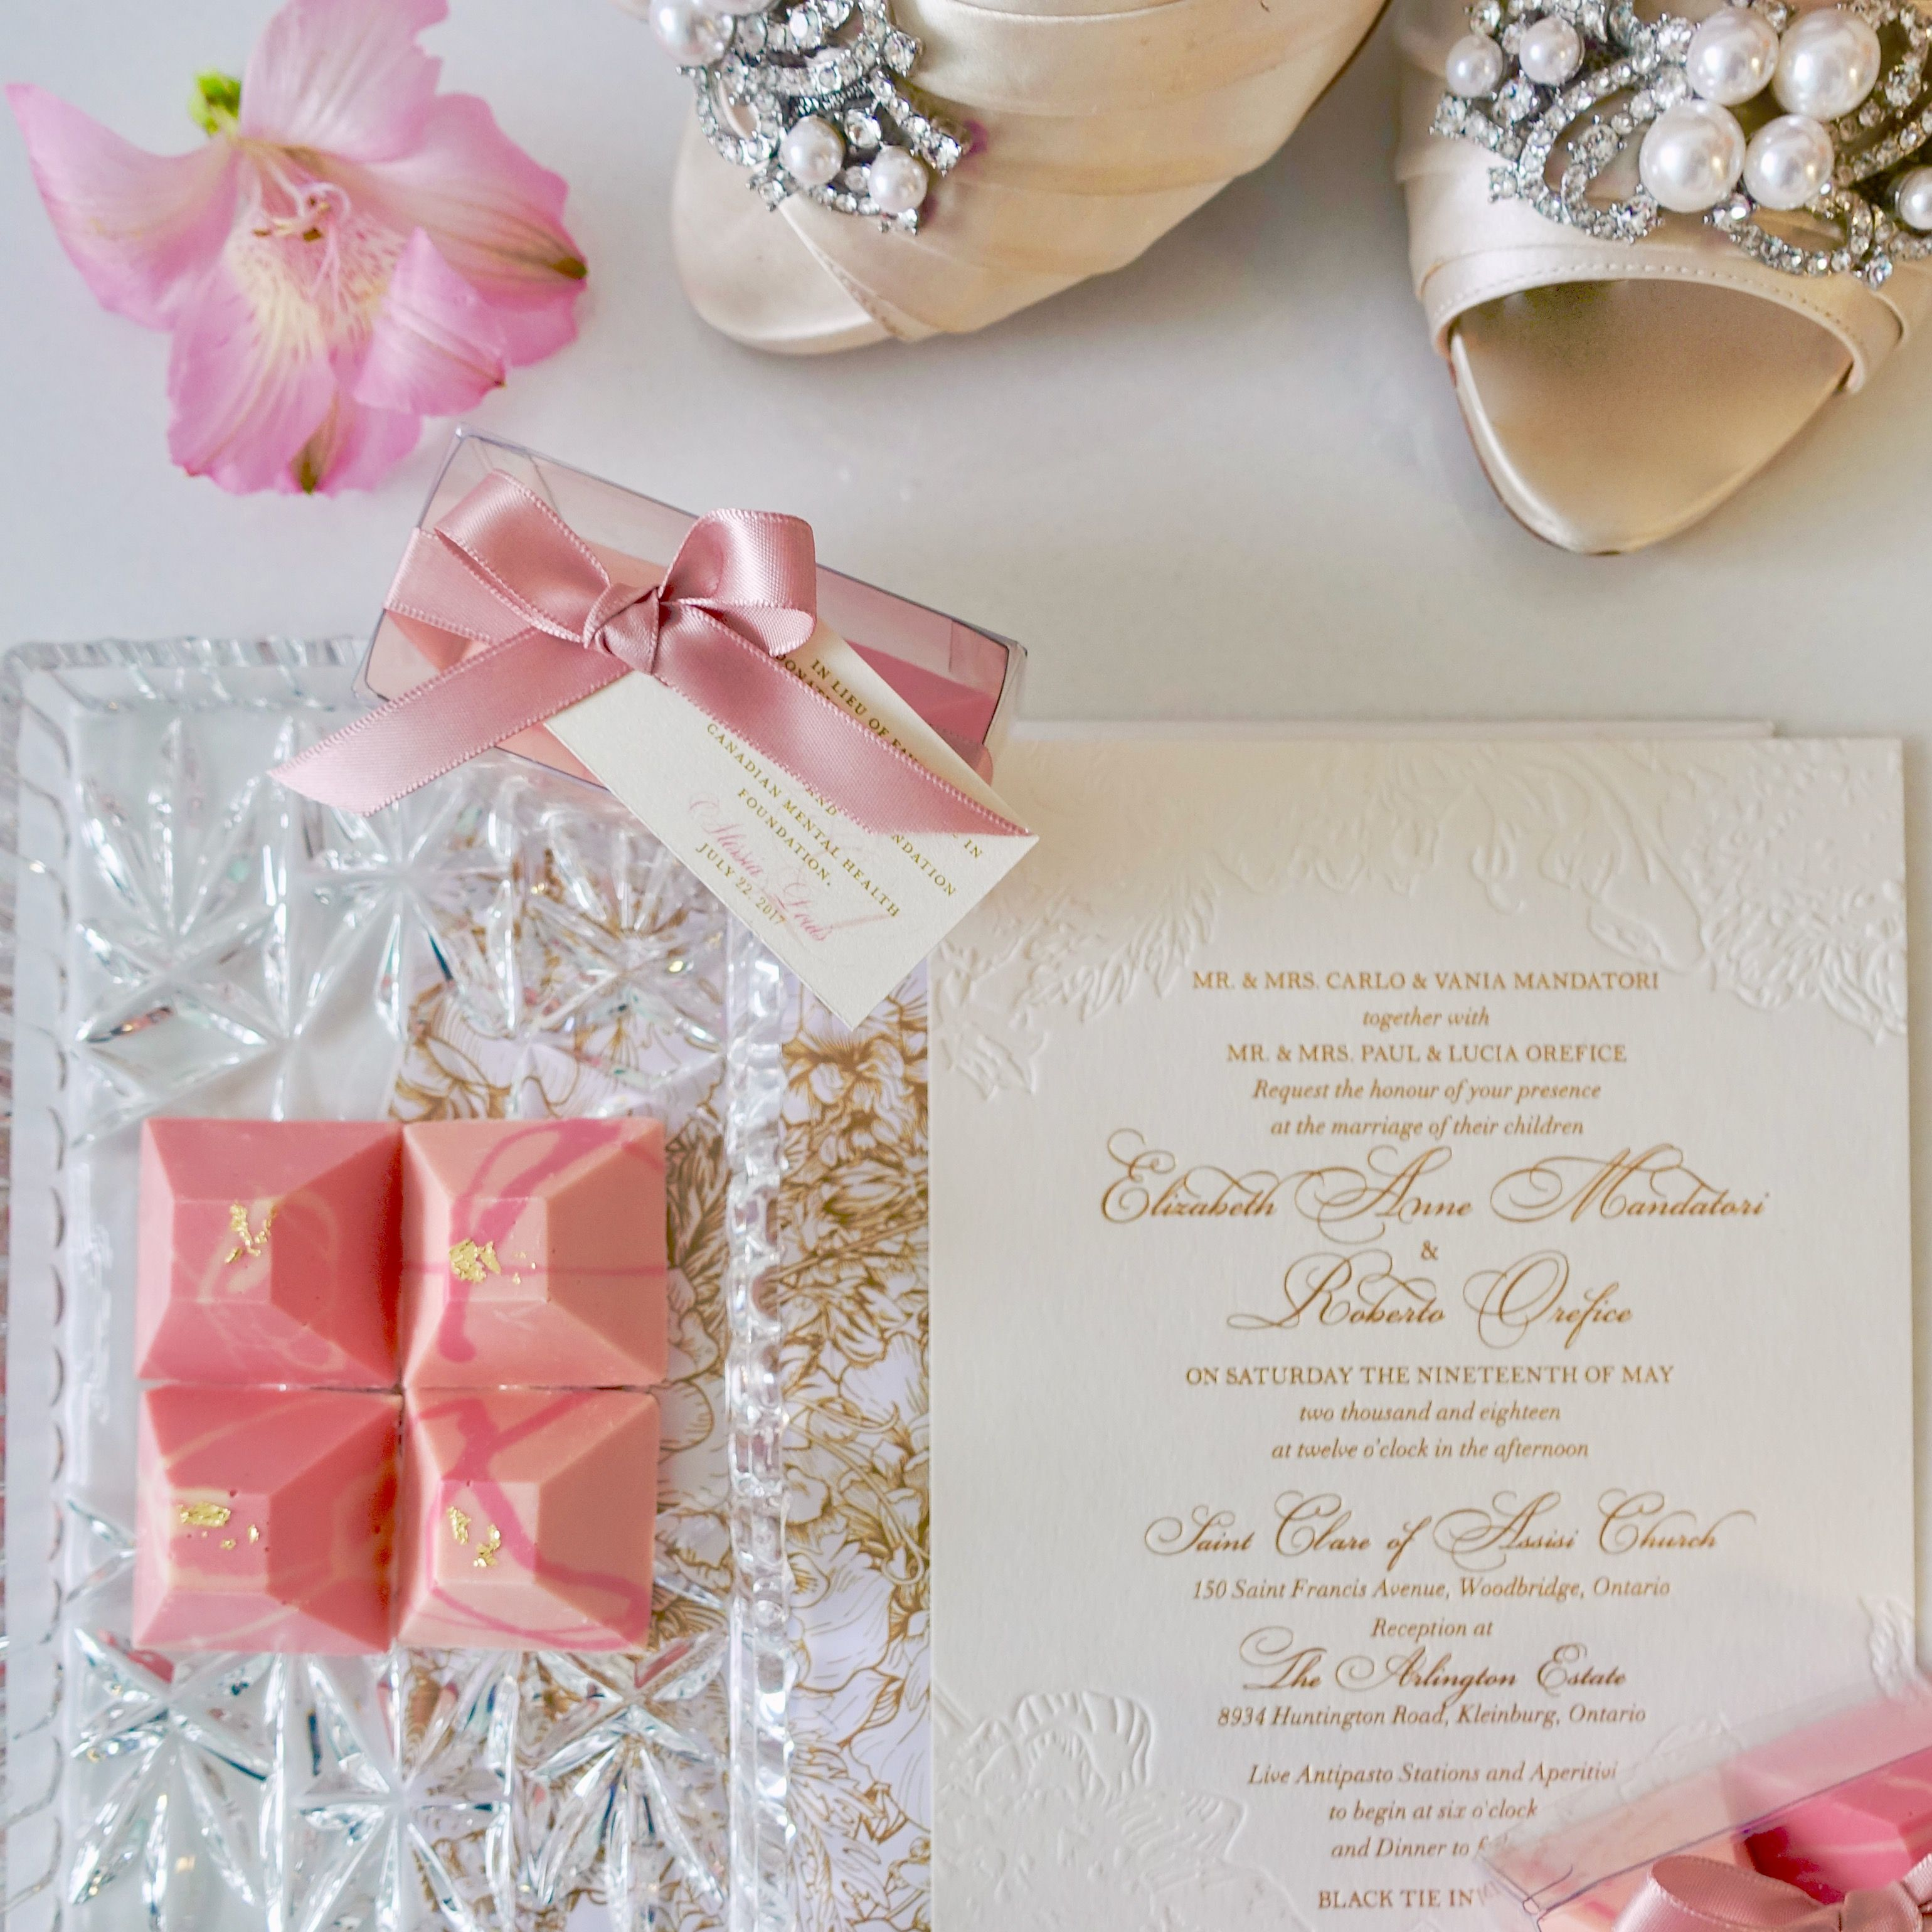 Chocolate Ombre Pyramids Blush wedding favour by Succulent